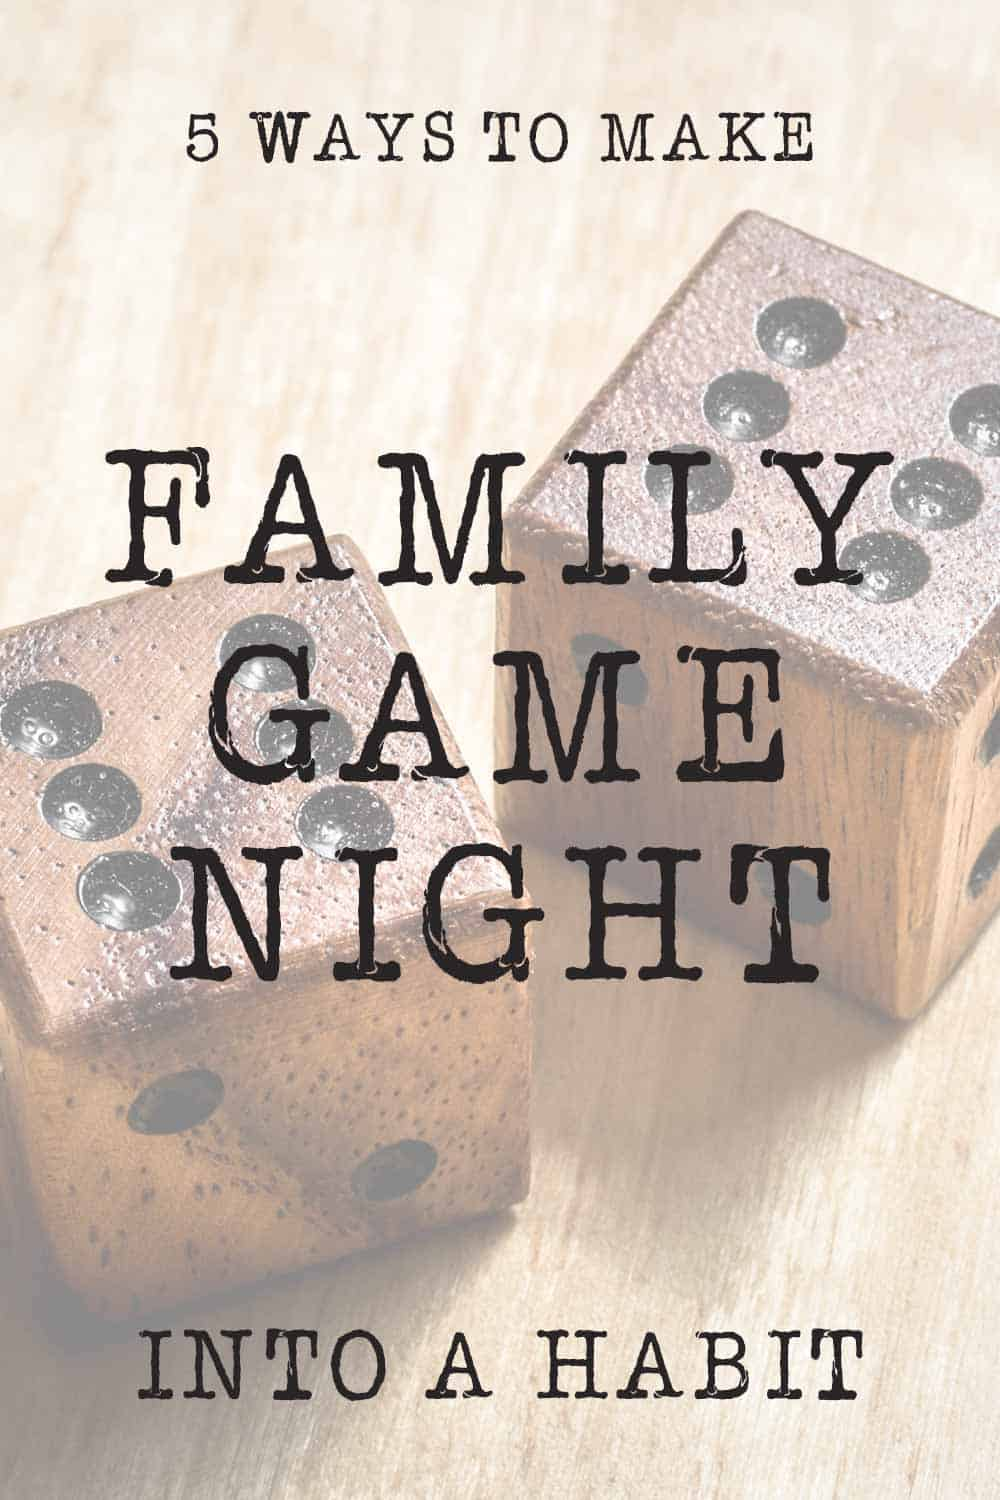 5 ways to make family game night a habit, two wood die with black dots